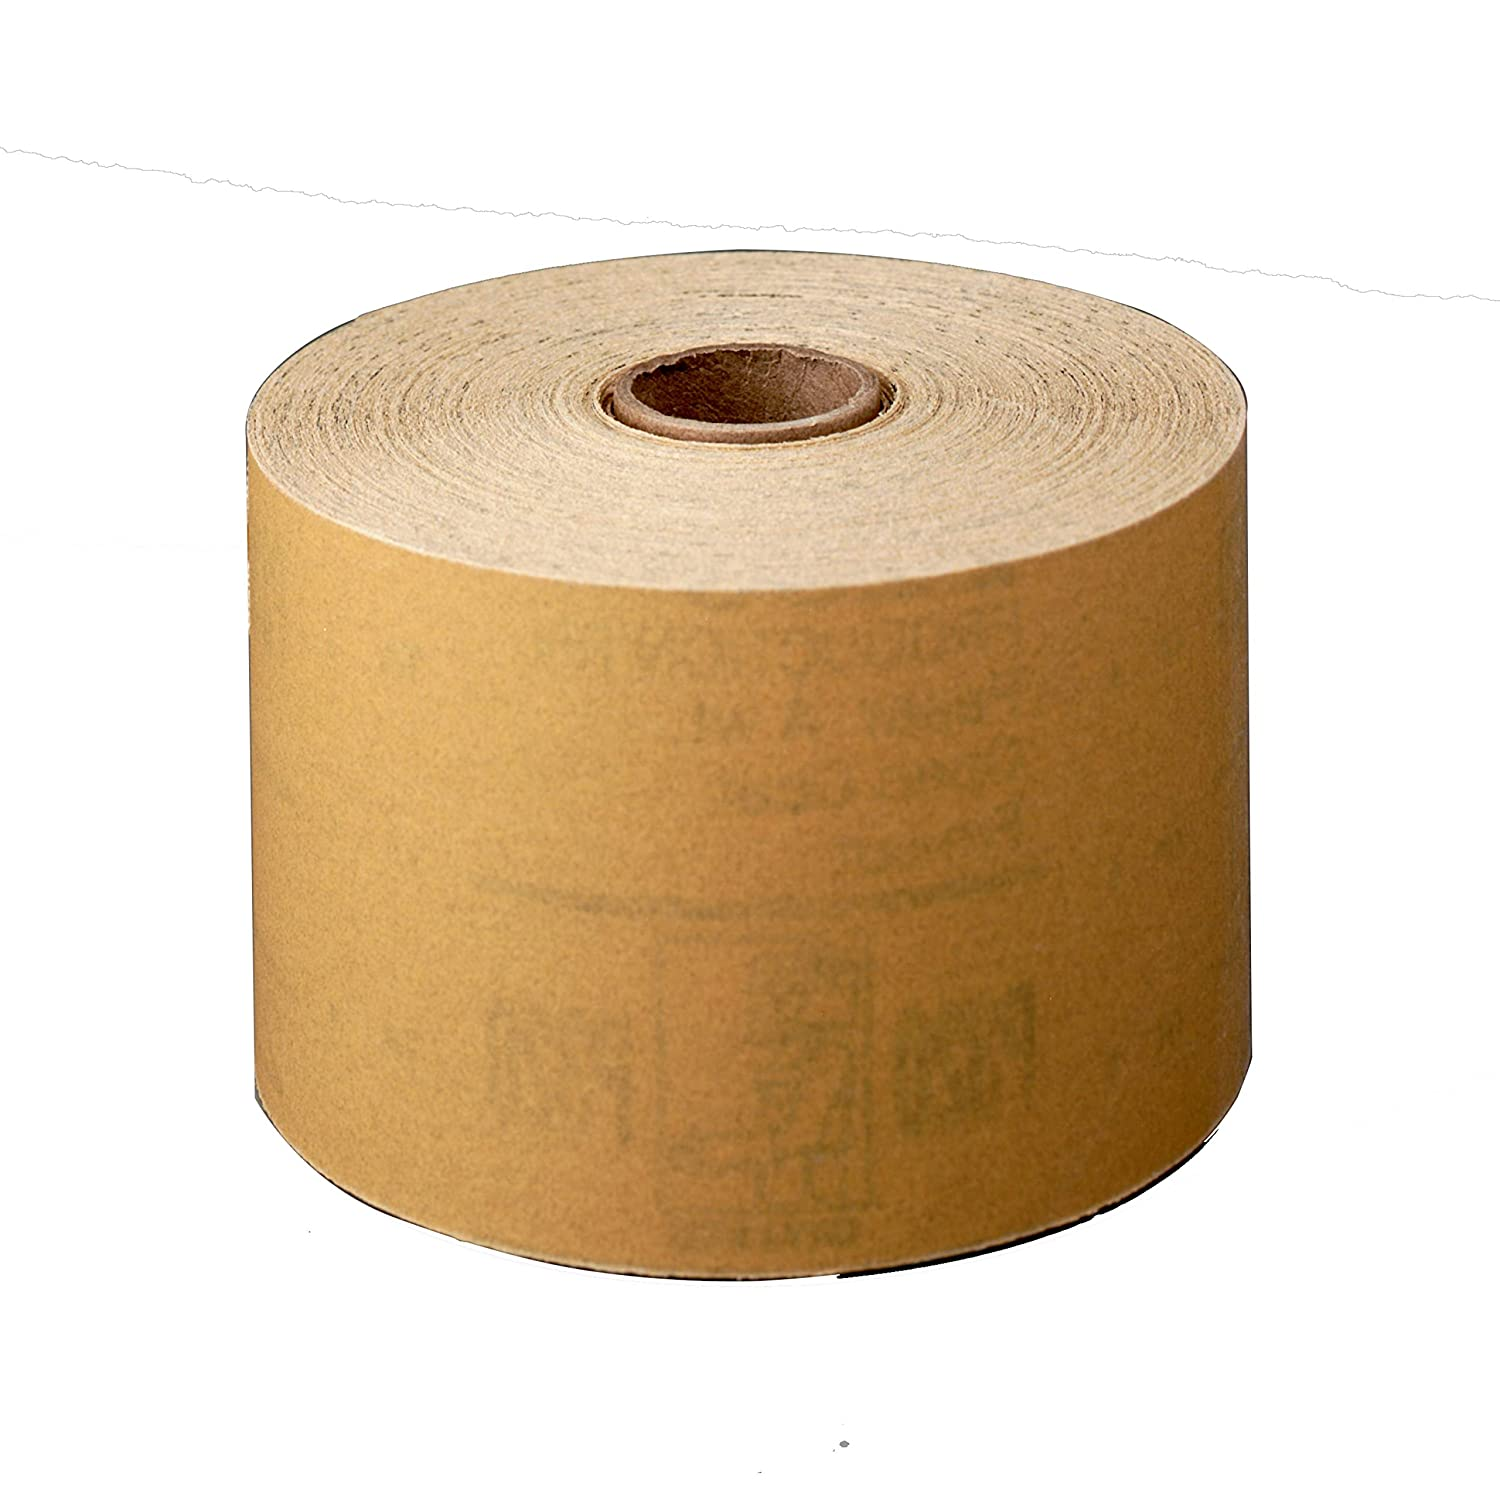 3M Stikit Gold Sheet Roll, 02595, P180, 2-3/4 in x 45 yd